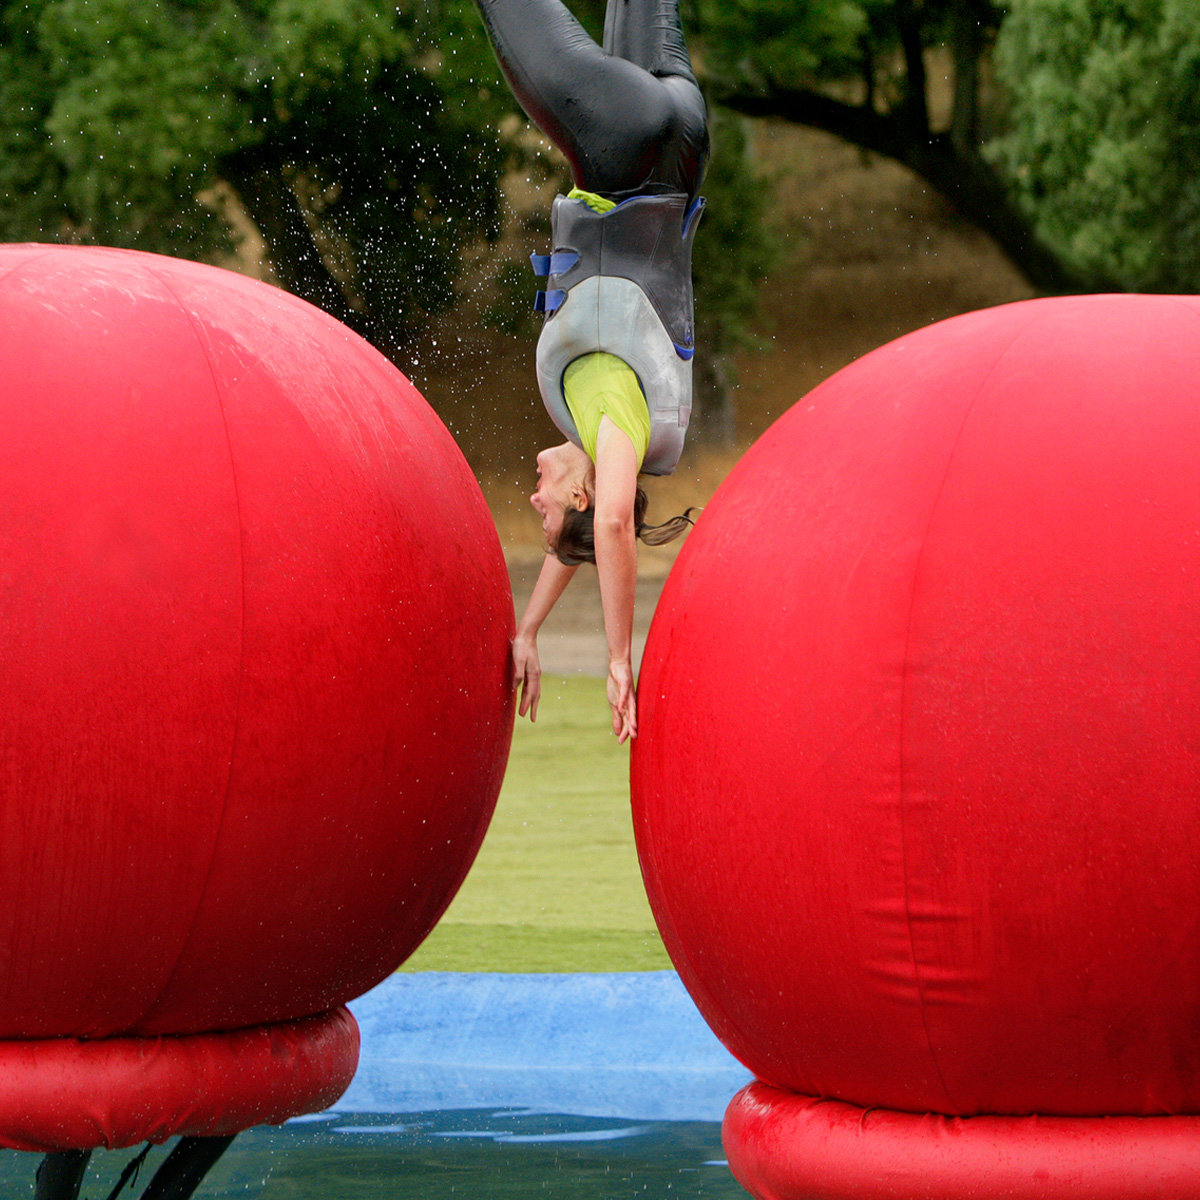 Wipeout Contestant Is Dead After Completing Obstacle Course